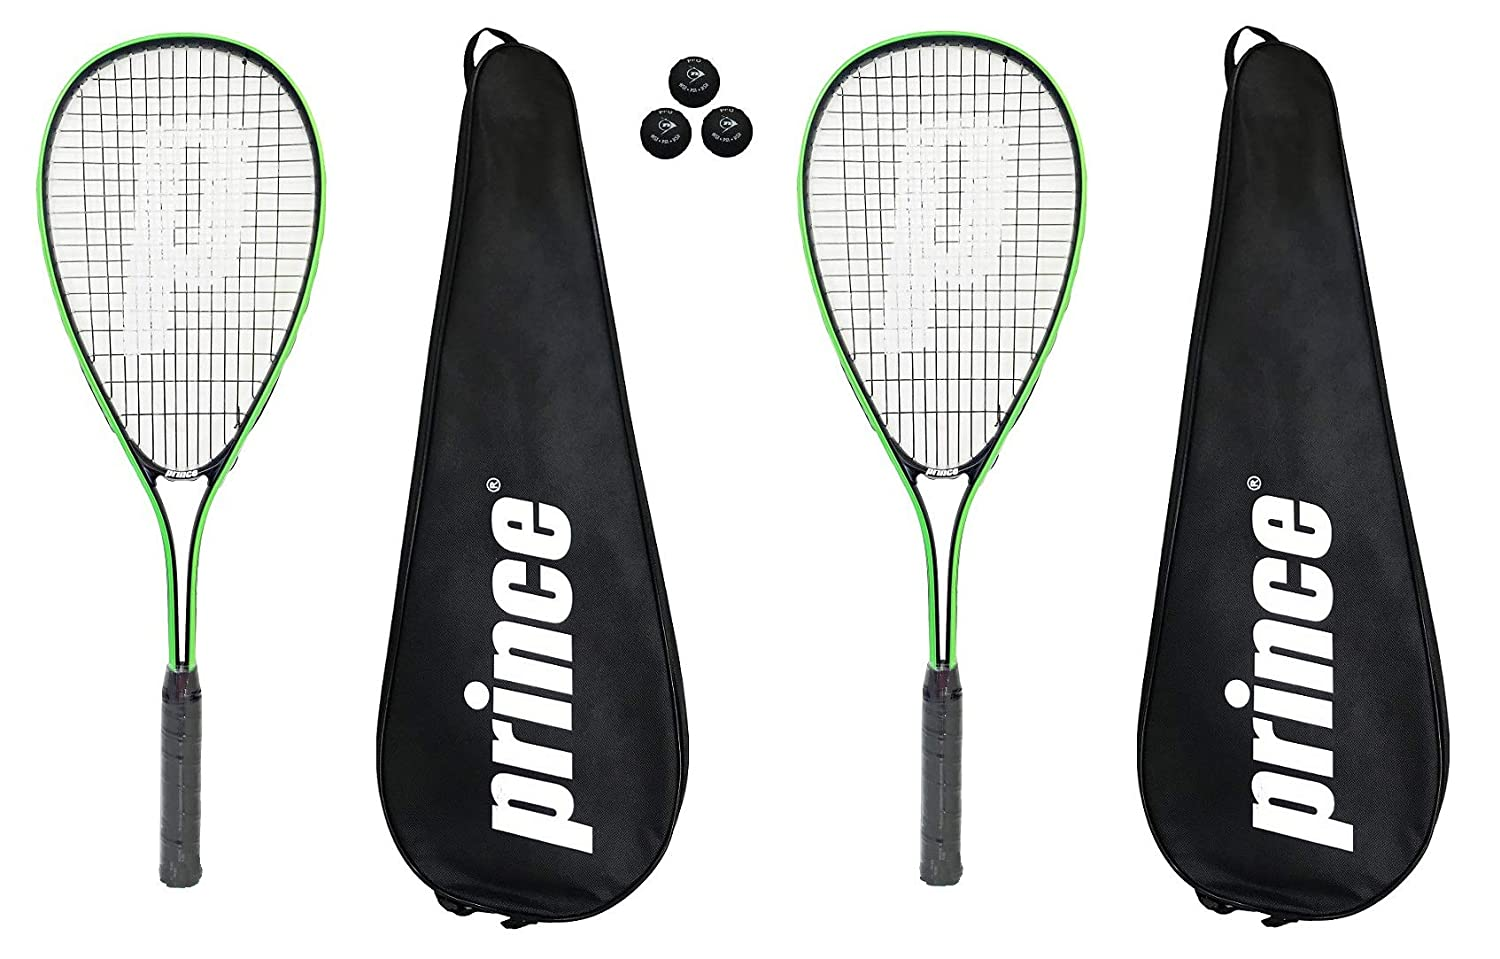 Prince 2 x Power PL150 Squash Rackets + 3 Squash Balls and Covers Dunlop